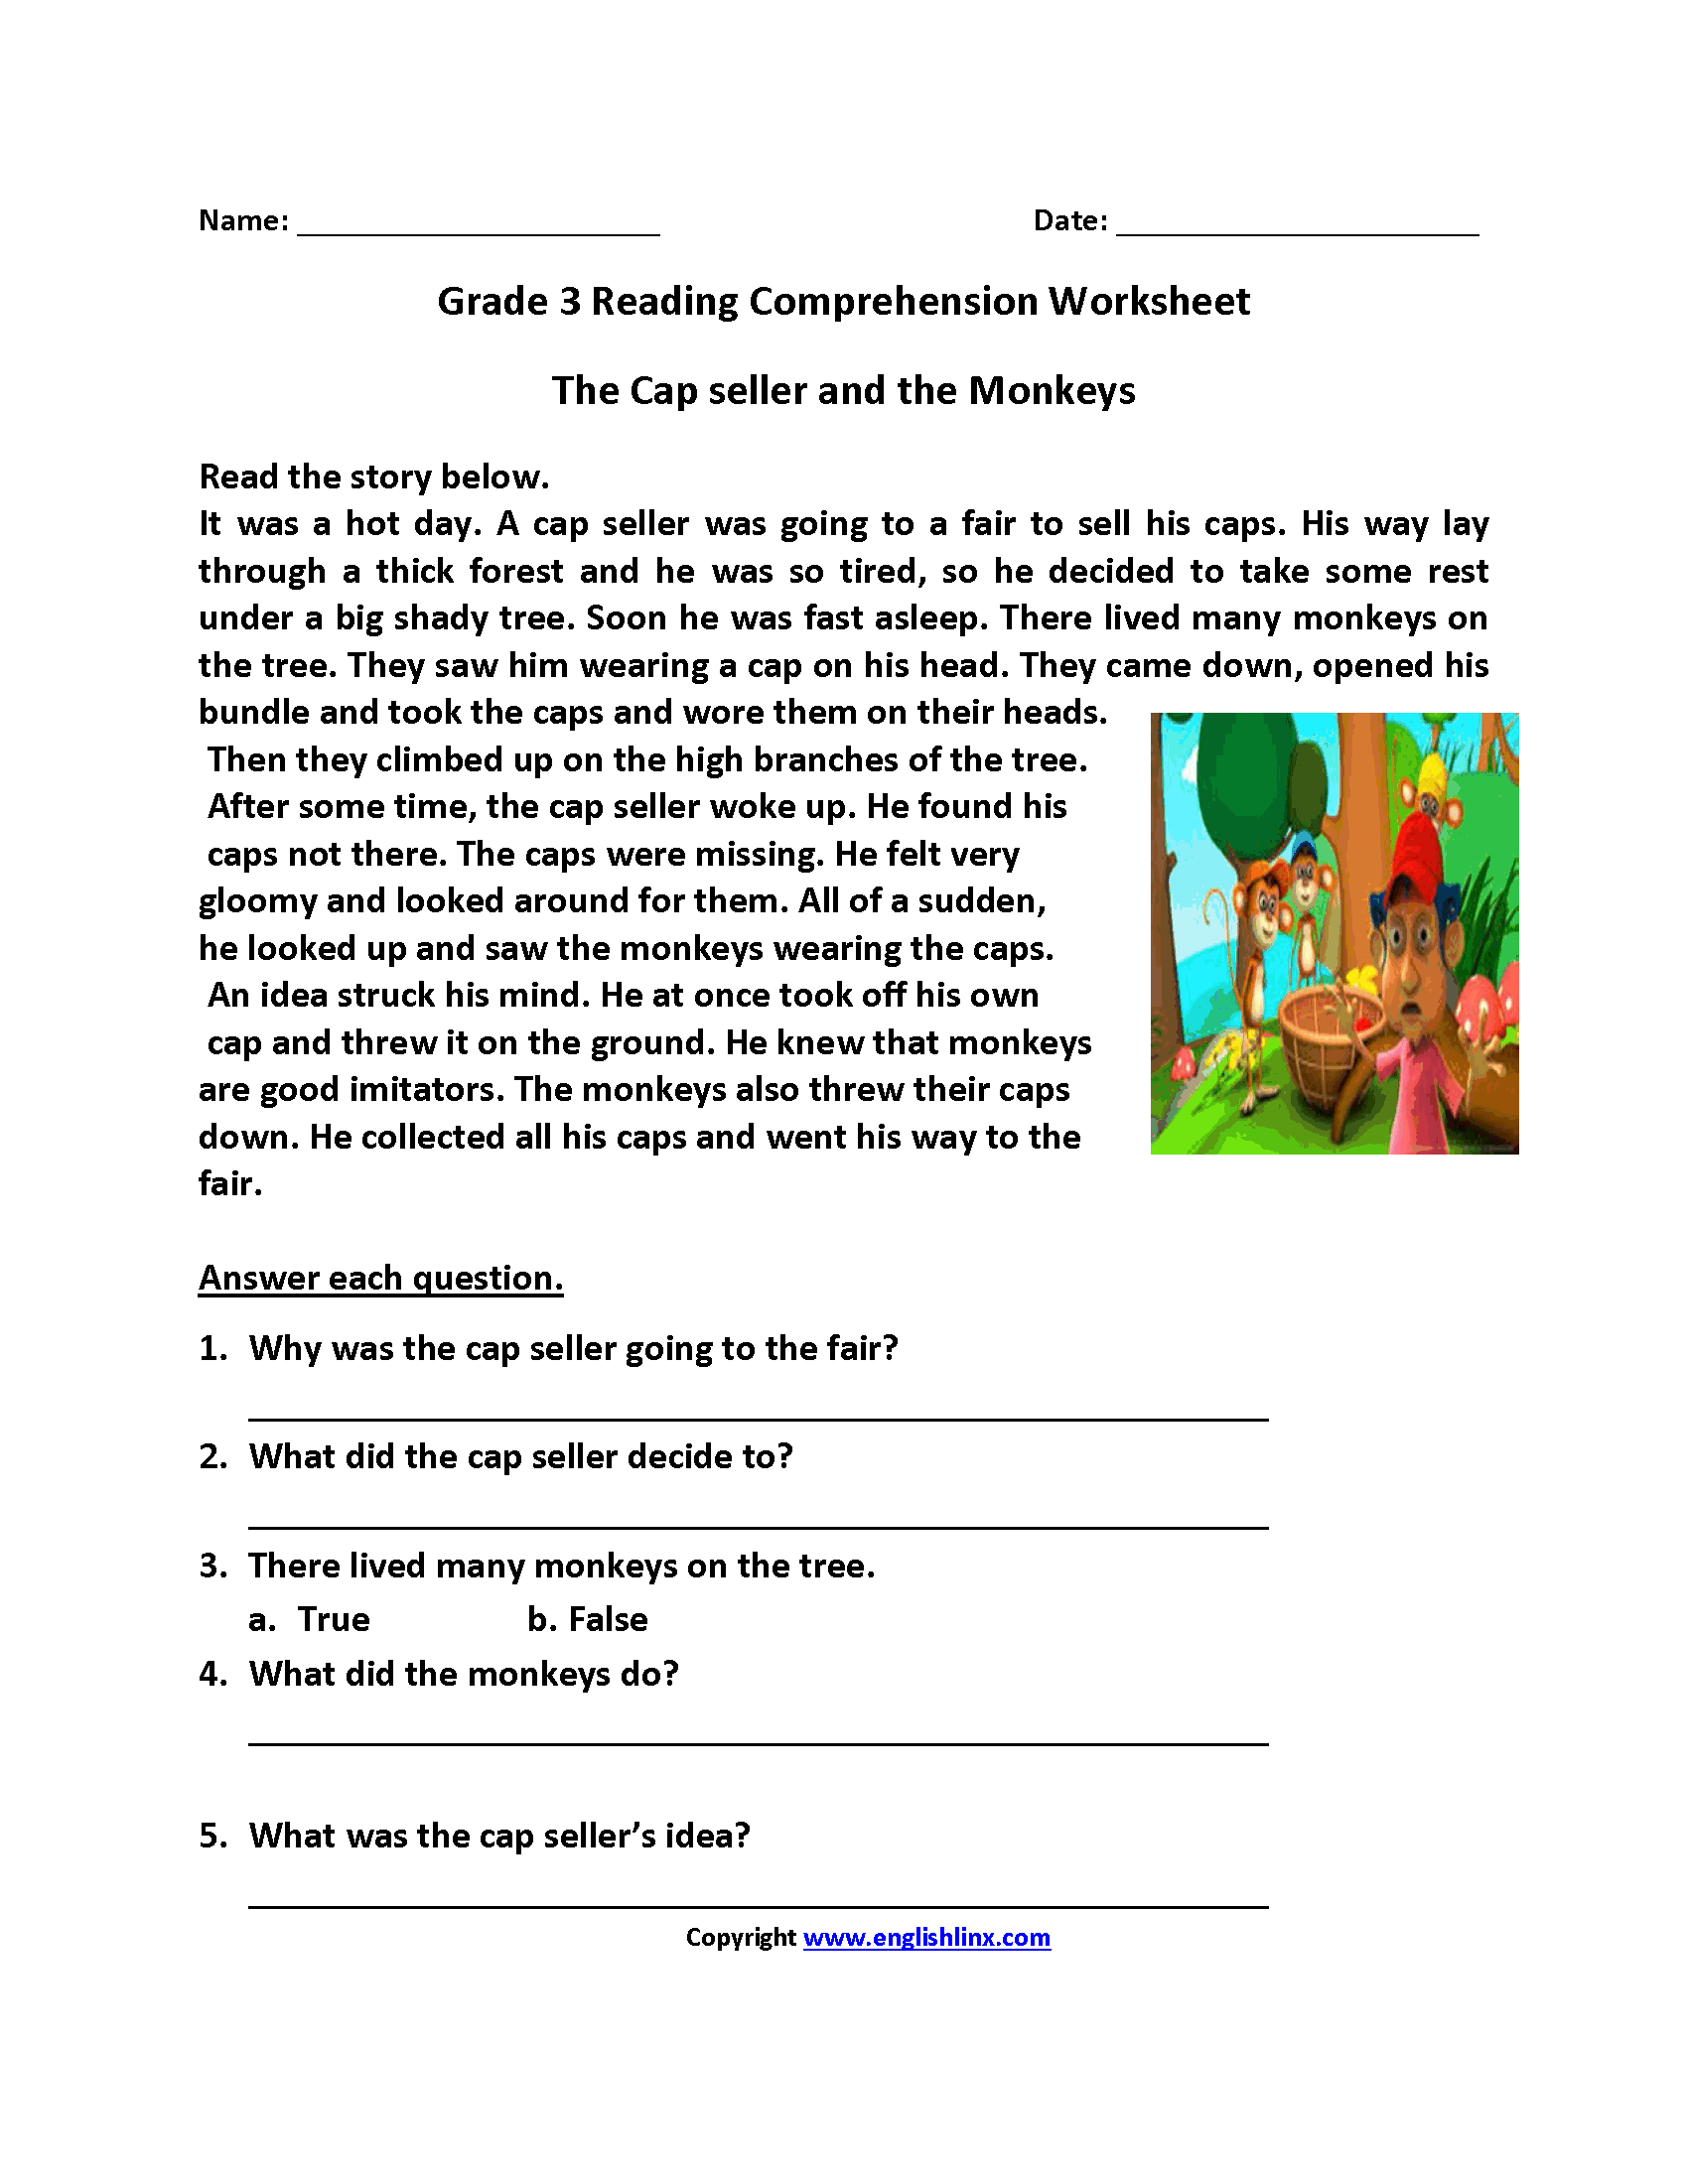 Free Reading Comprehension Worksheets For 3rd Grade